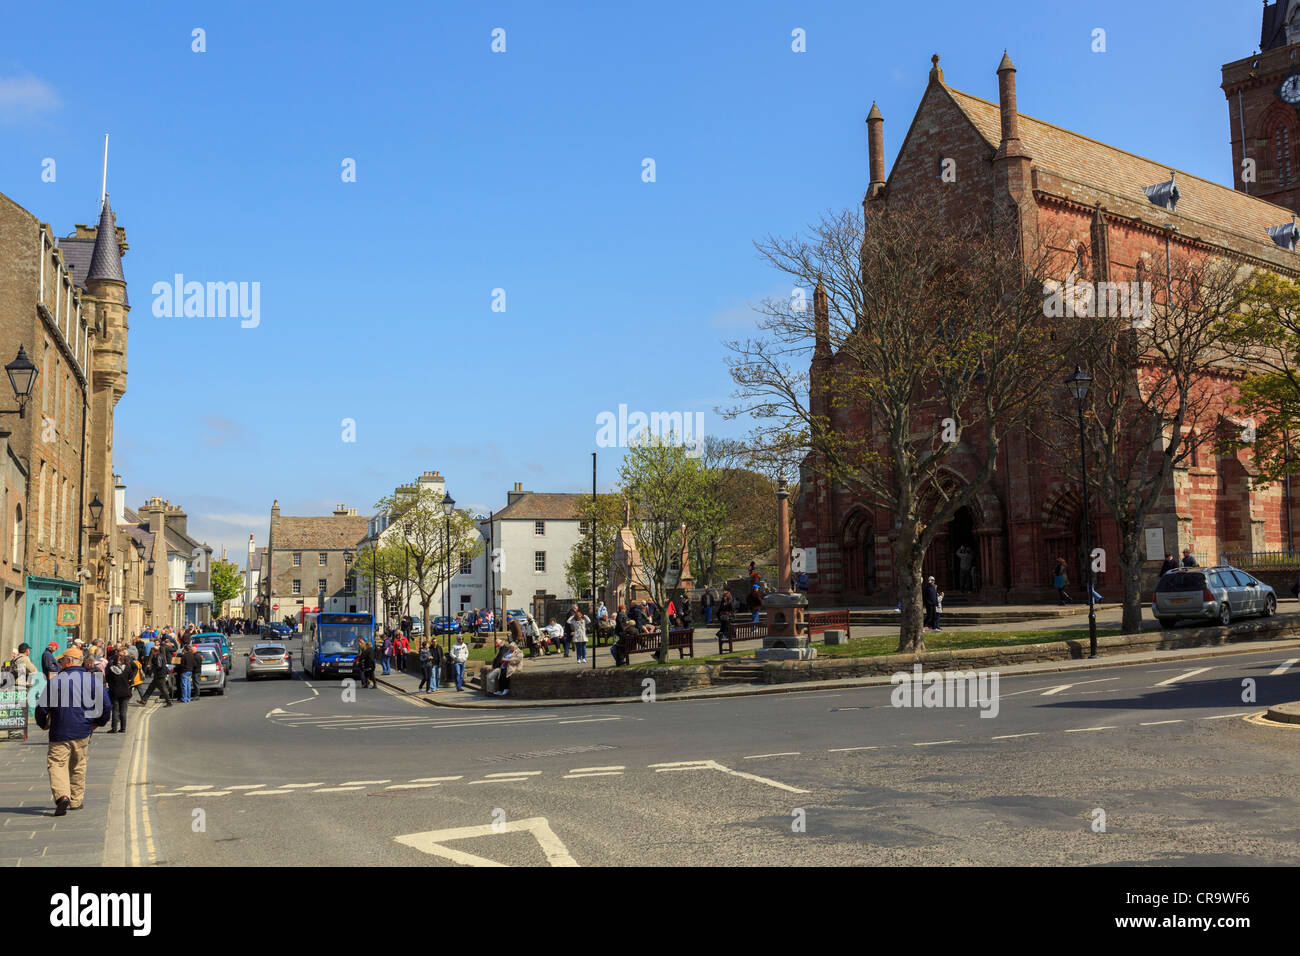 Street scene at Kirk Green outside St Magnus cathedral in capital town. Kirkwall Orkney Islands Scotland UK - Stock Image